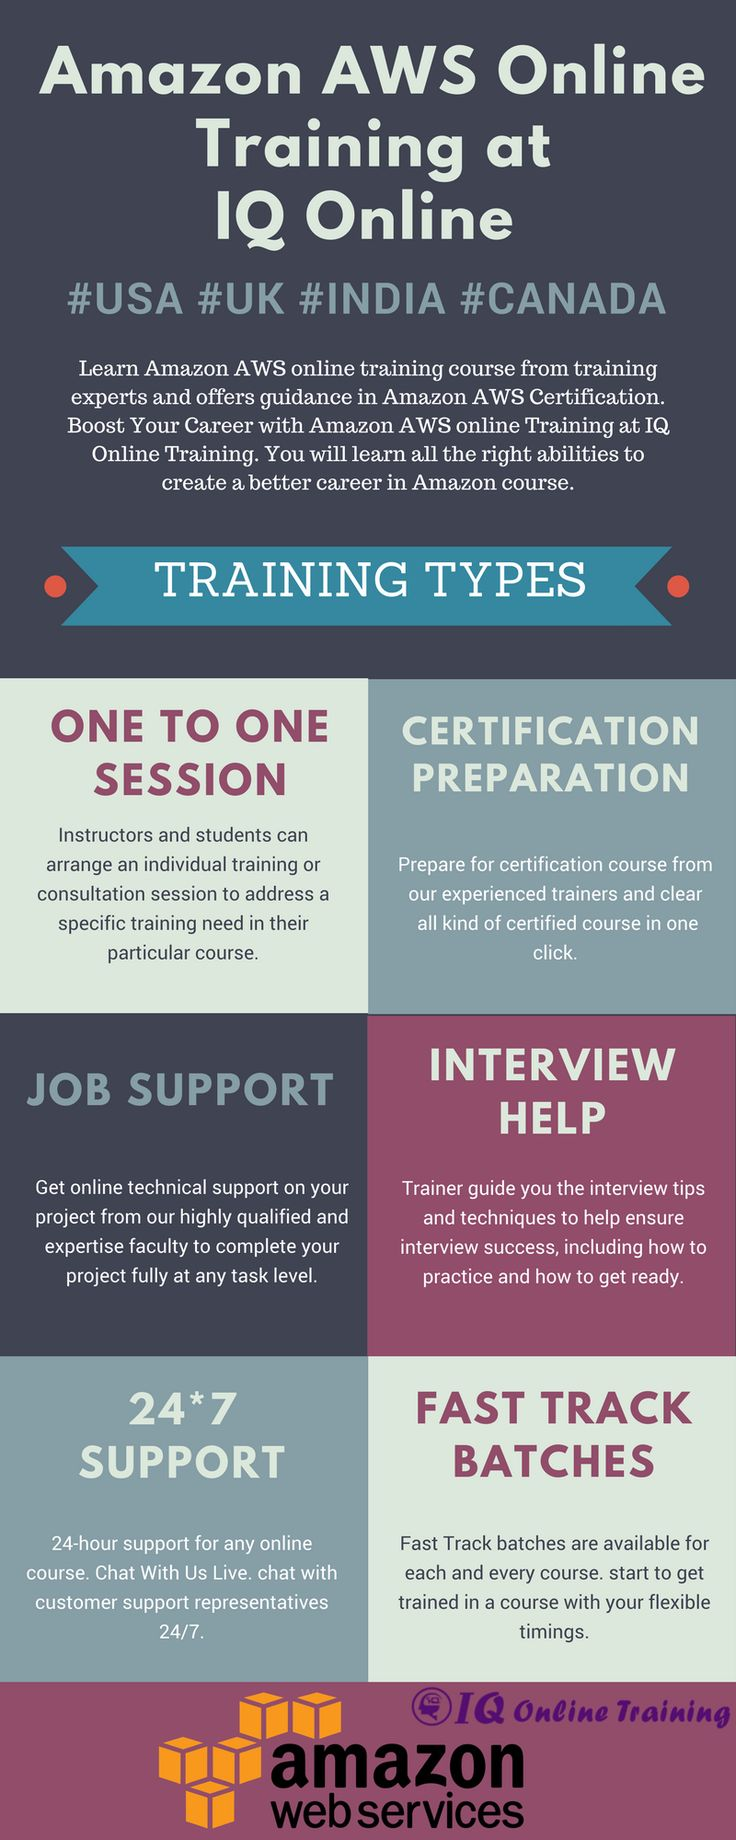 Ms de 20 ideas increbles sobre online training courses en pinterest learn amazon aws online training course from training experts and offers guidance in amazon aws certification xflitez Gallery